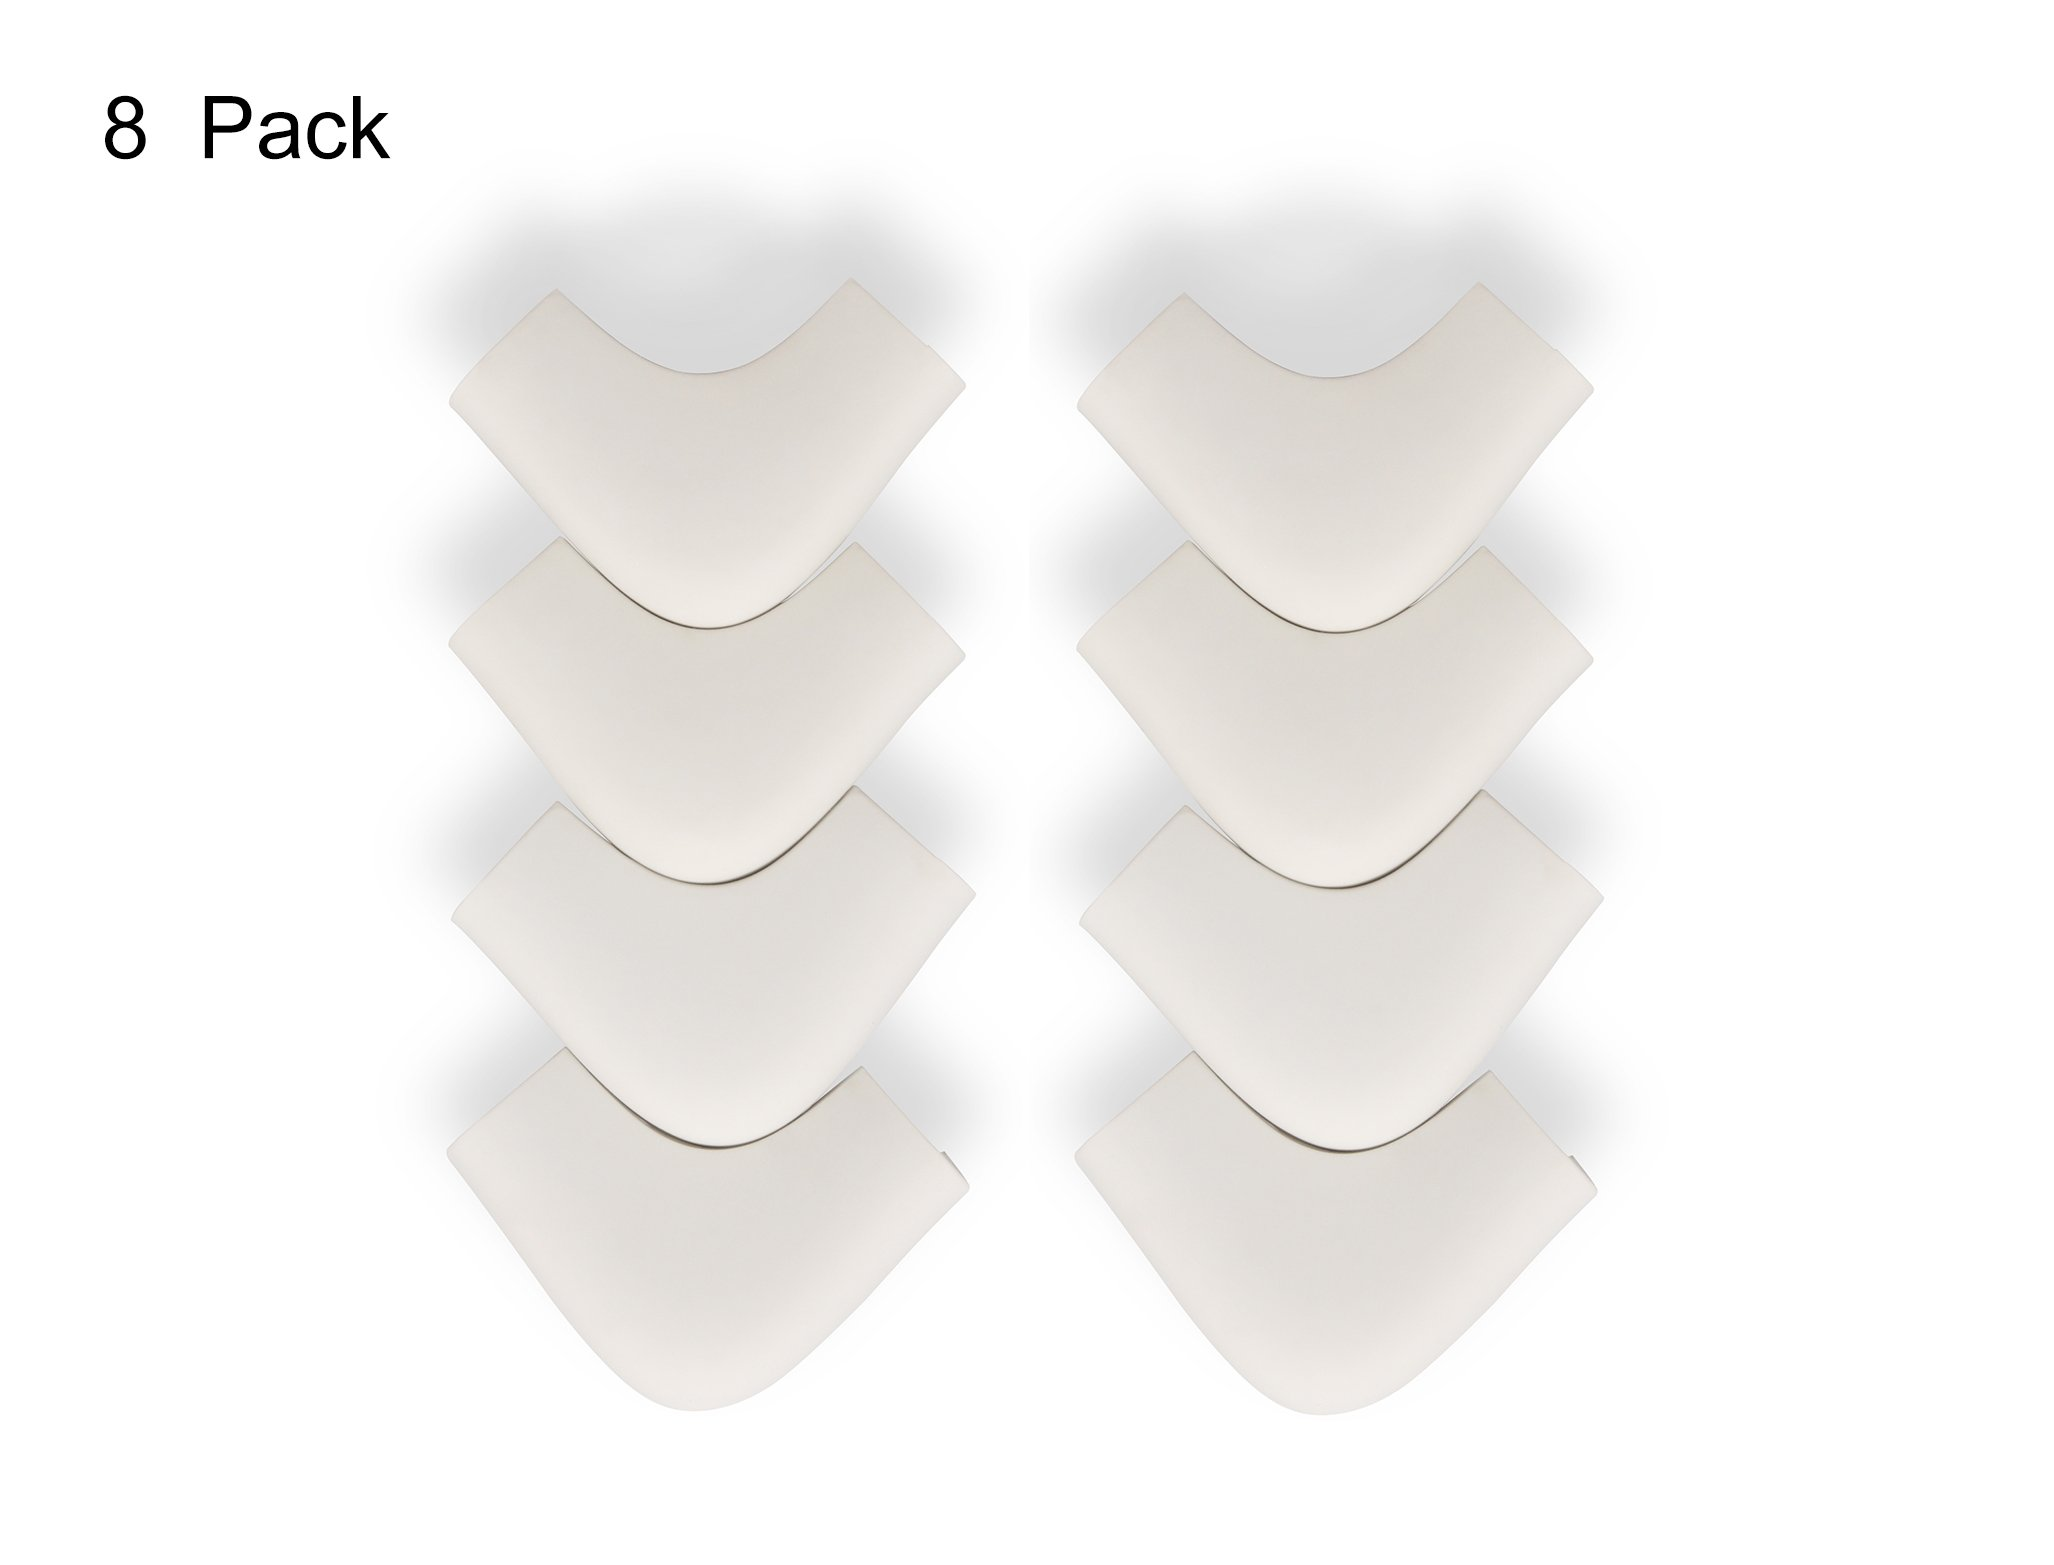 LONGFITE Corner Protectors, L Shape Food Grade Silicone Material Extra Thick Baby Safety Corner Guards, Cream, 8 Piece